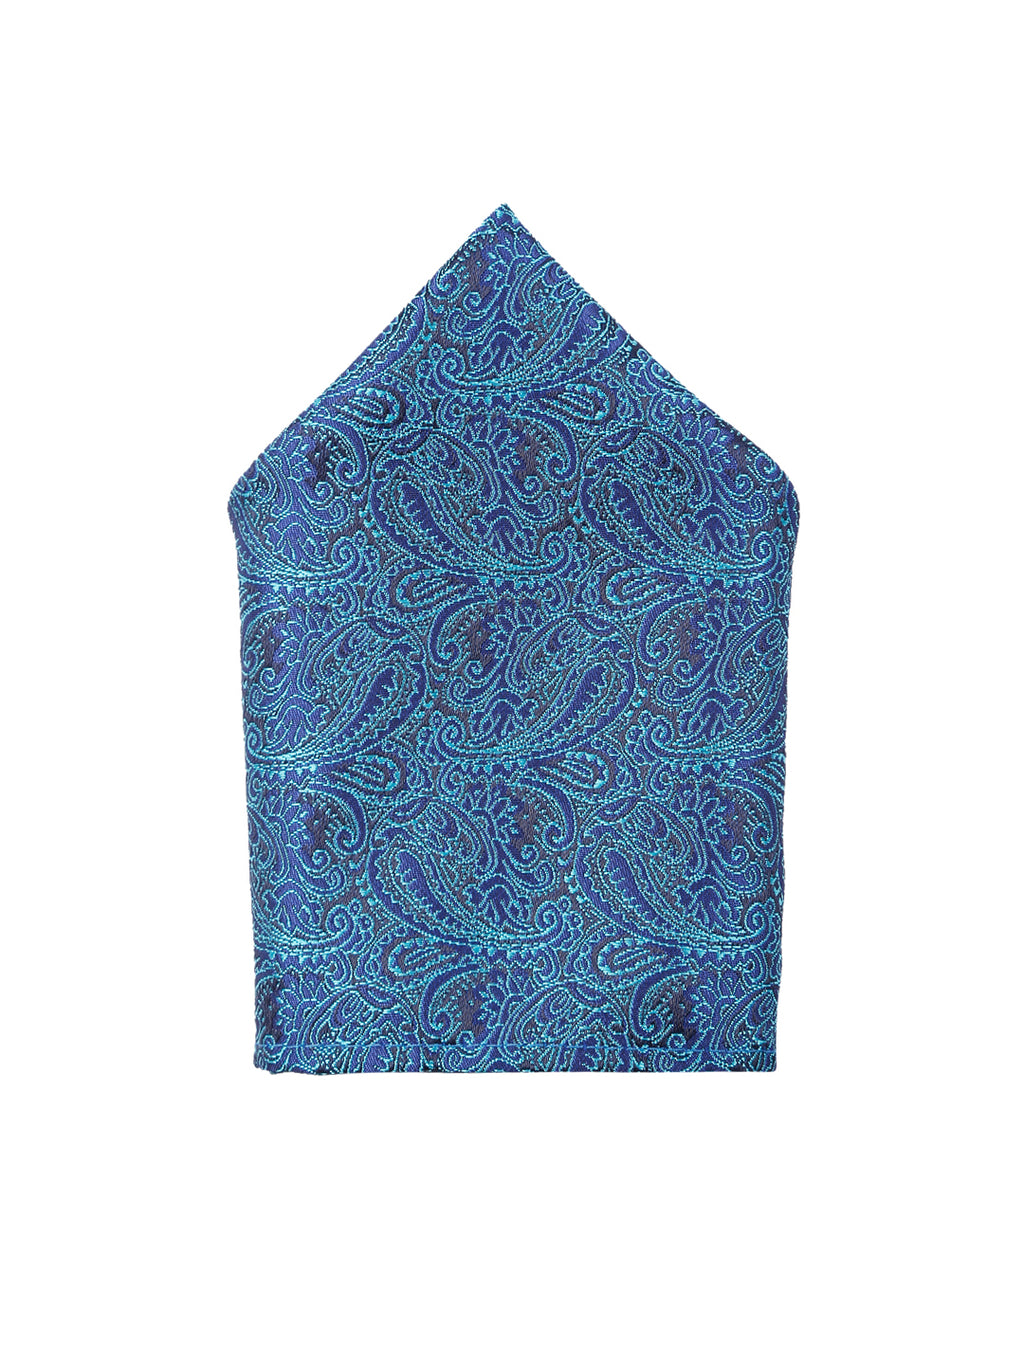 Zido Pocket Square for Men PSQ715